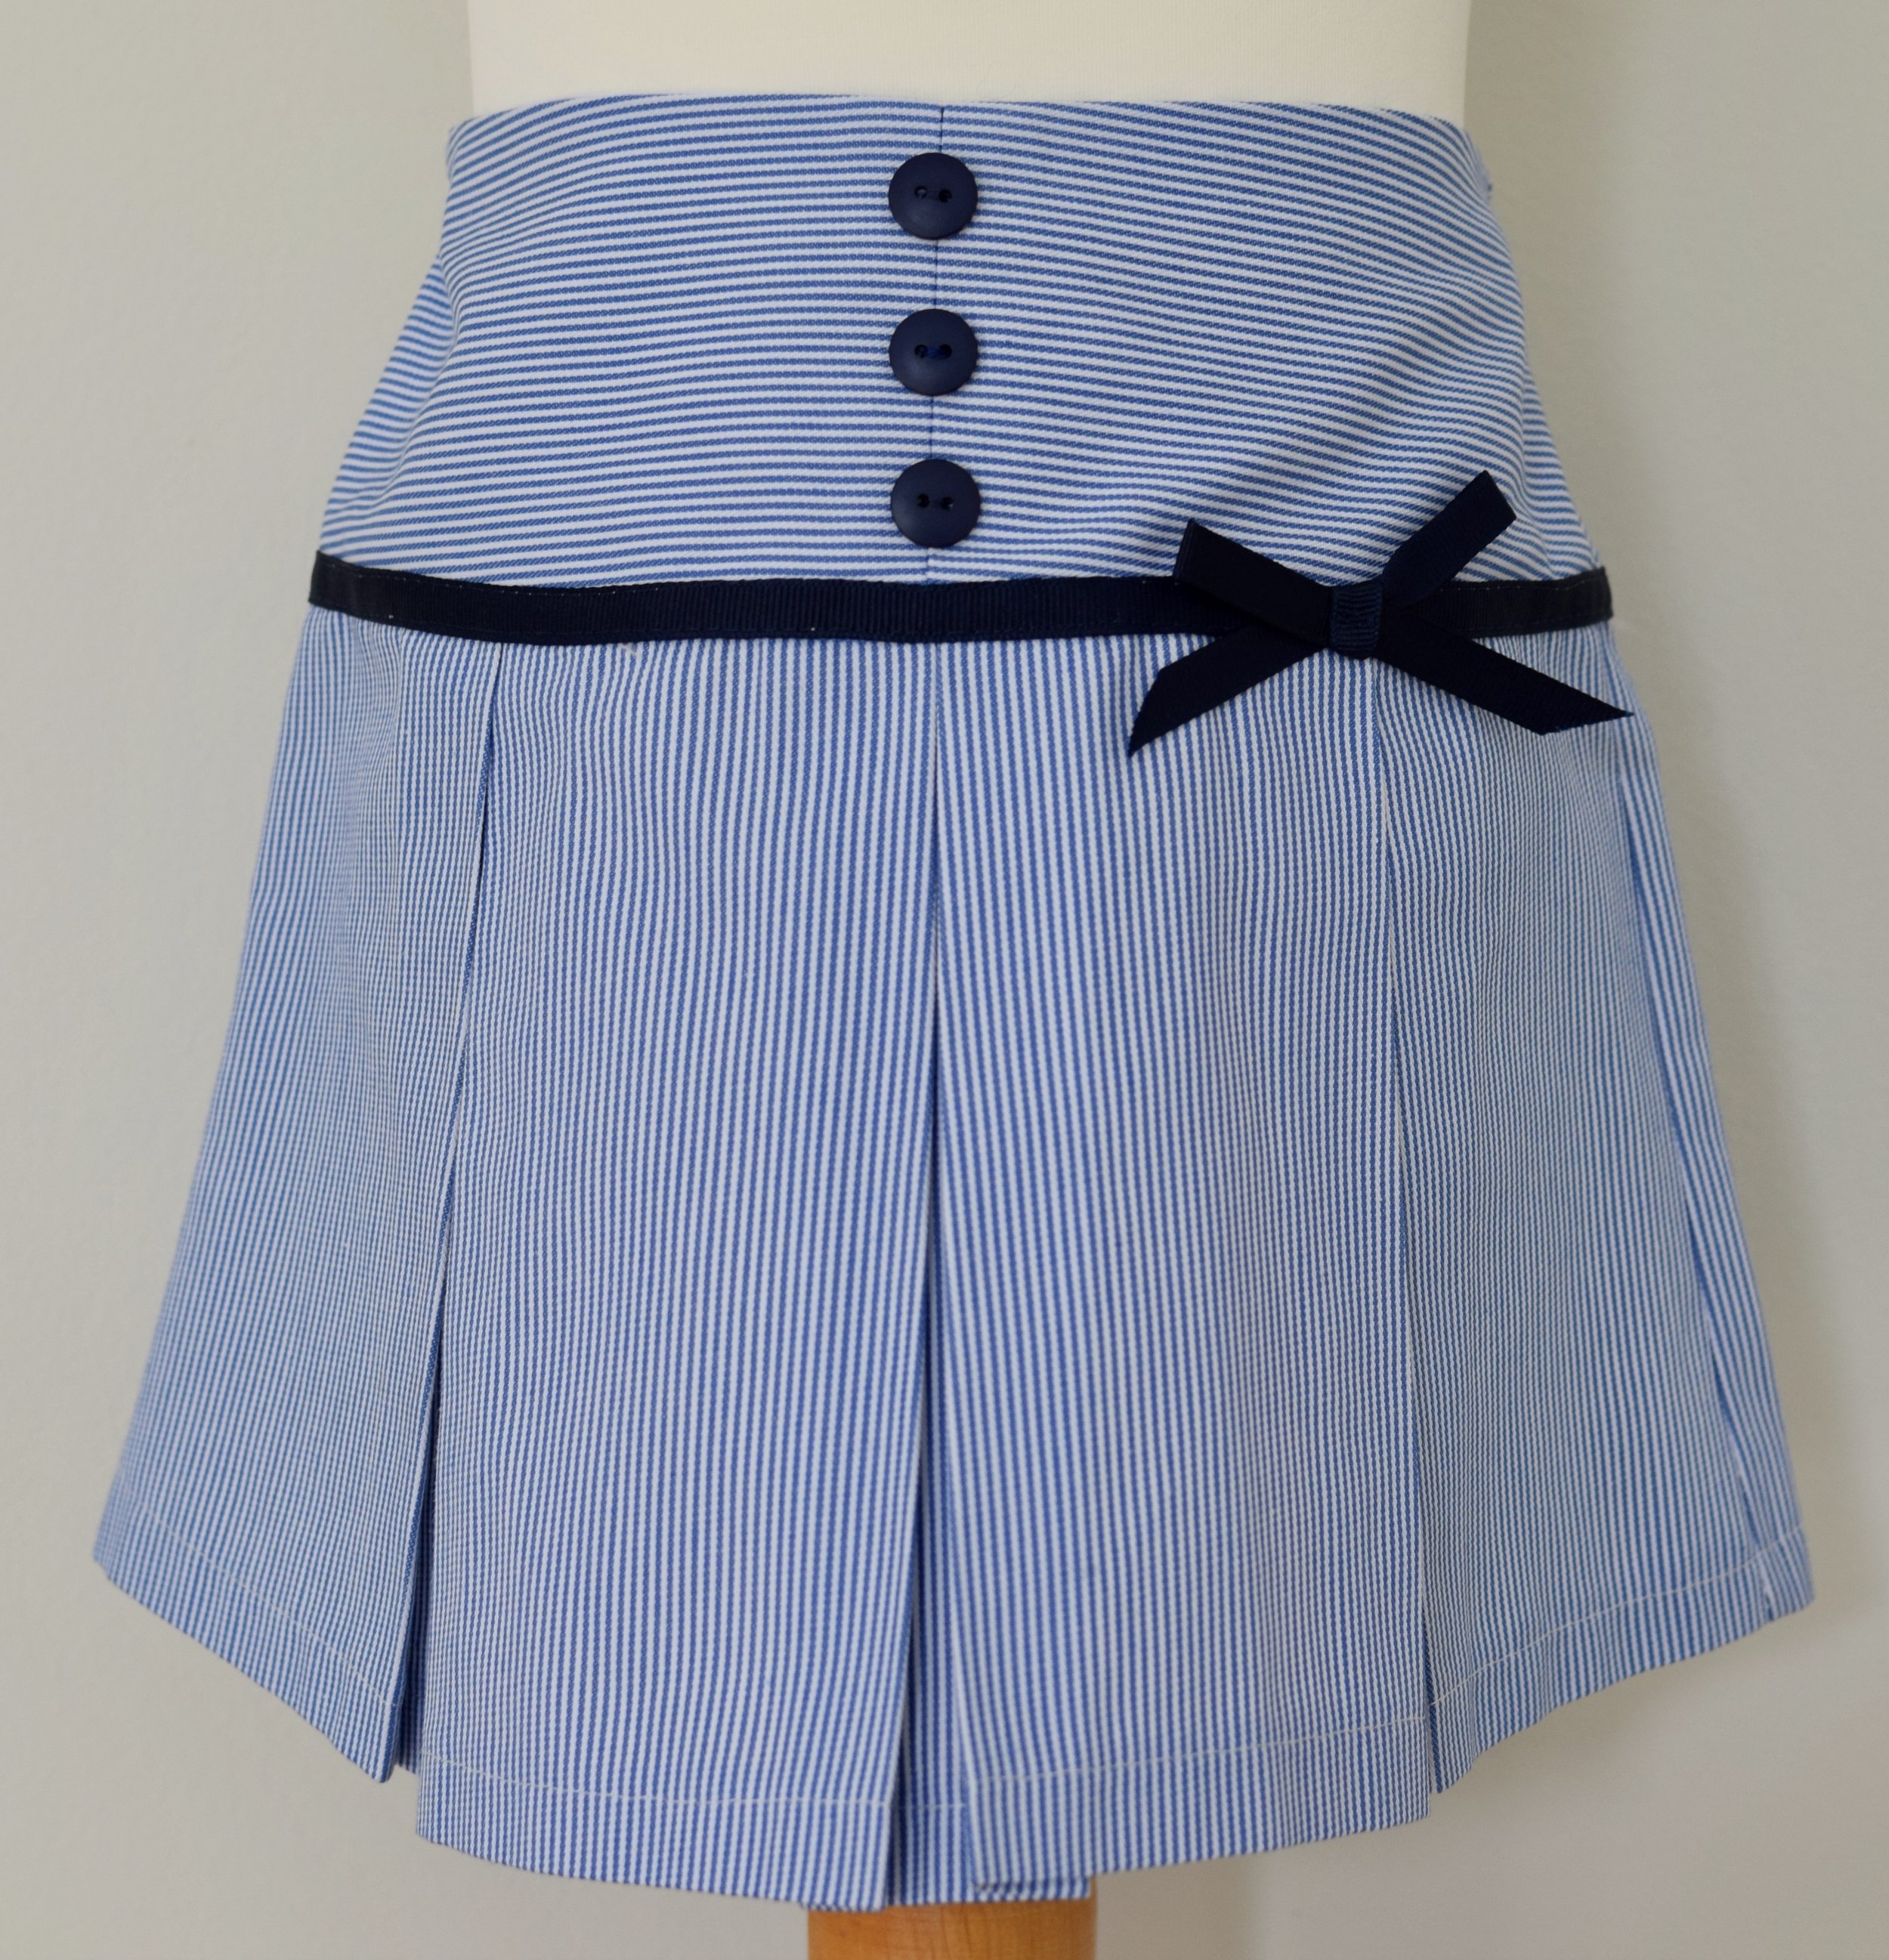 Ticking stripe pleated skirt with an elasticated and adjustable waist, fixed navy grosgrain ribbon and button detail.  £25